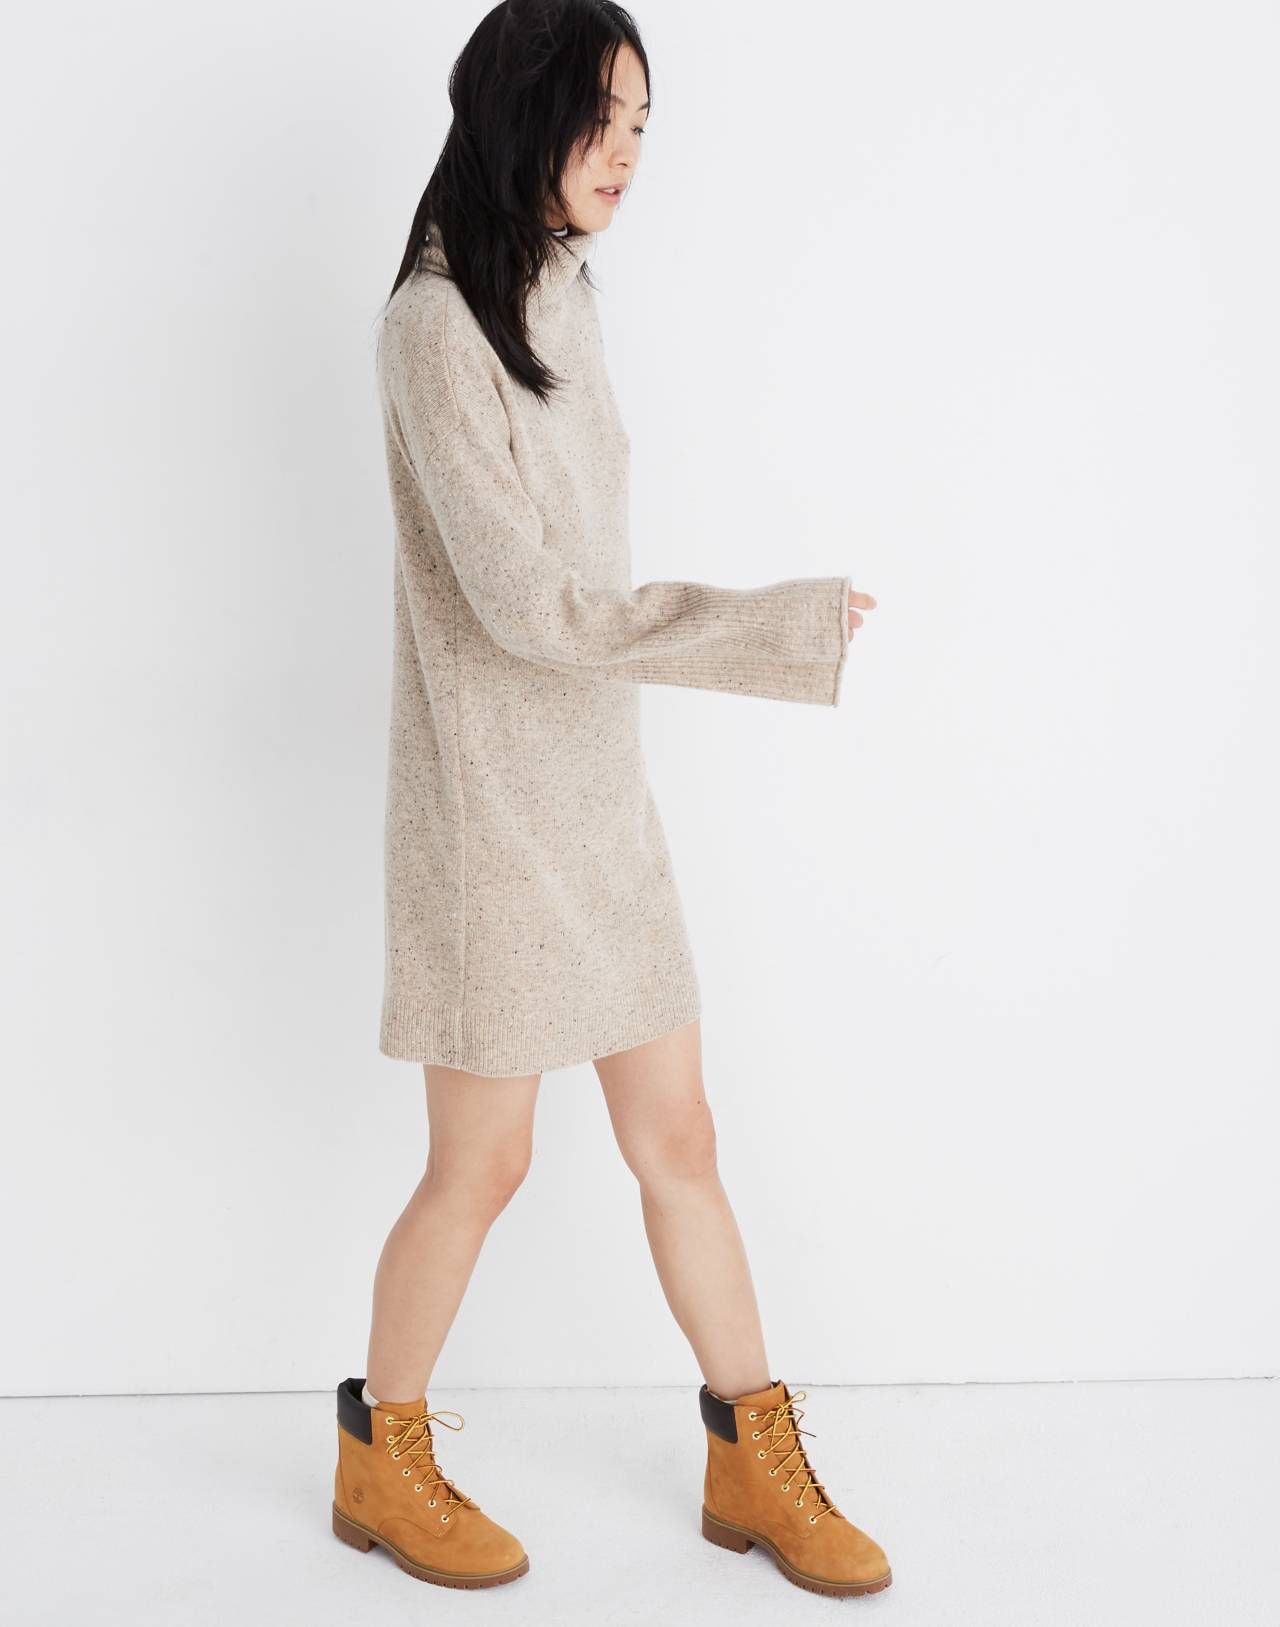 Bell-Sleeve Turtleneck Sweater-Dress in donegal ryewater image 2